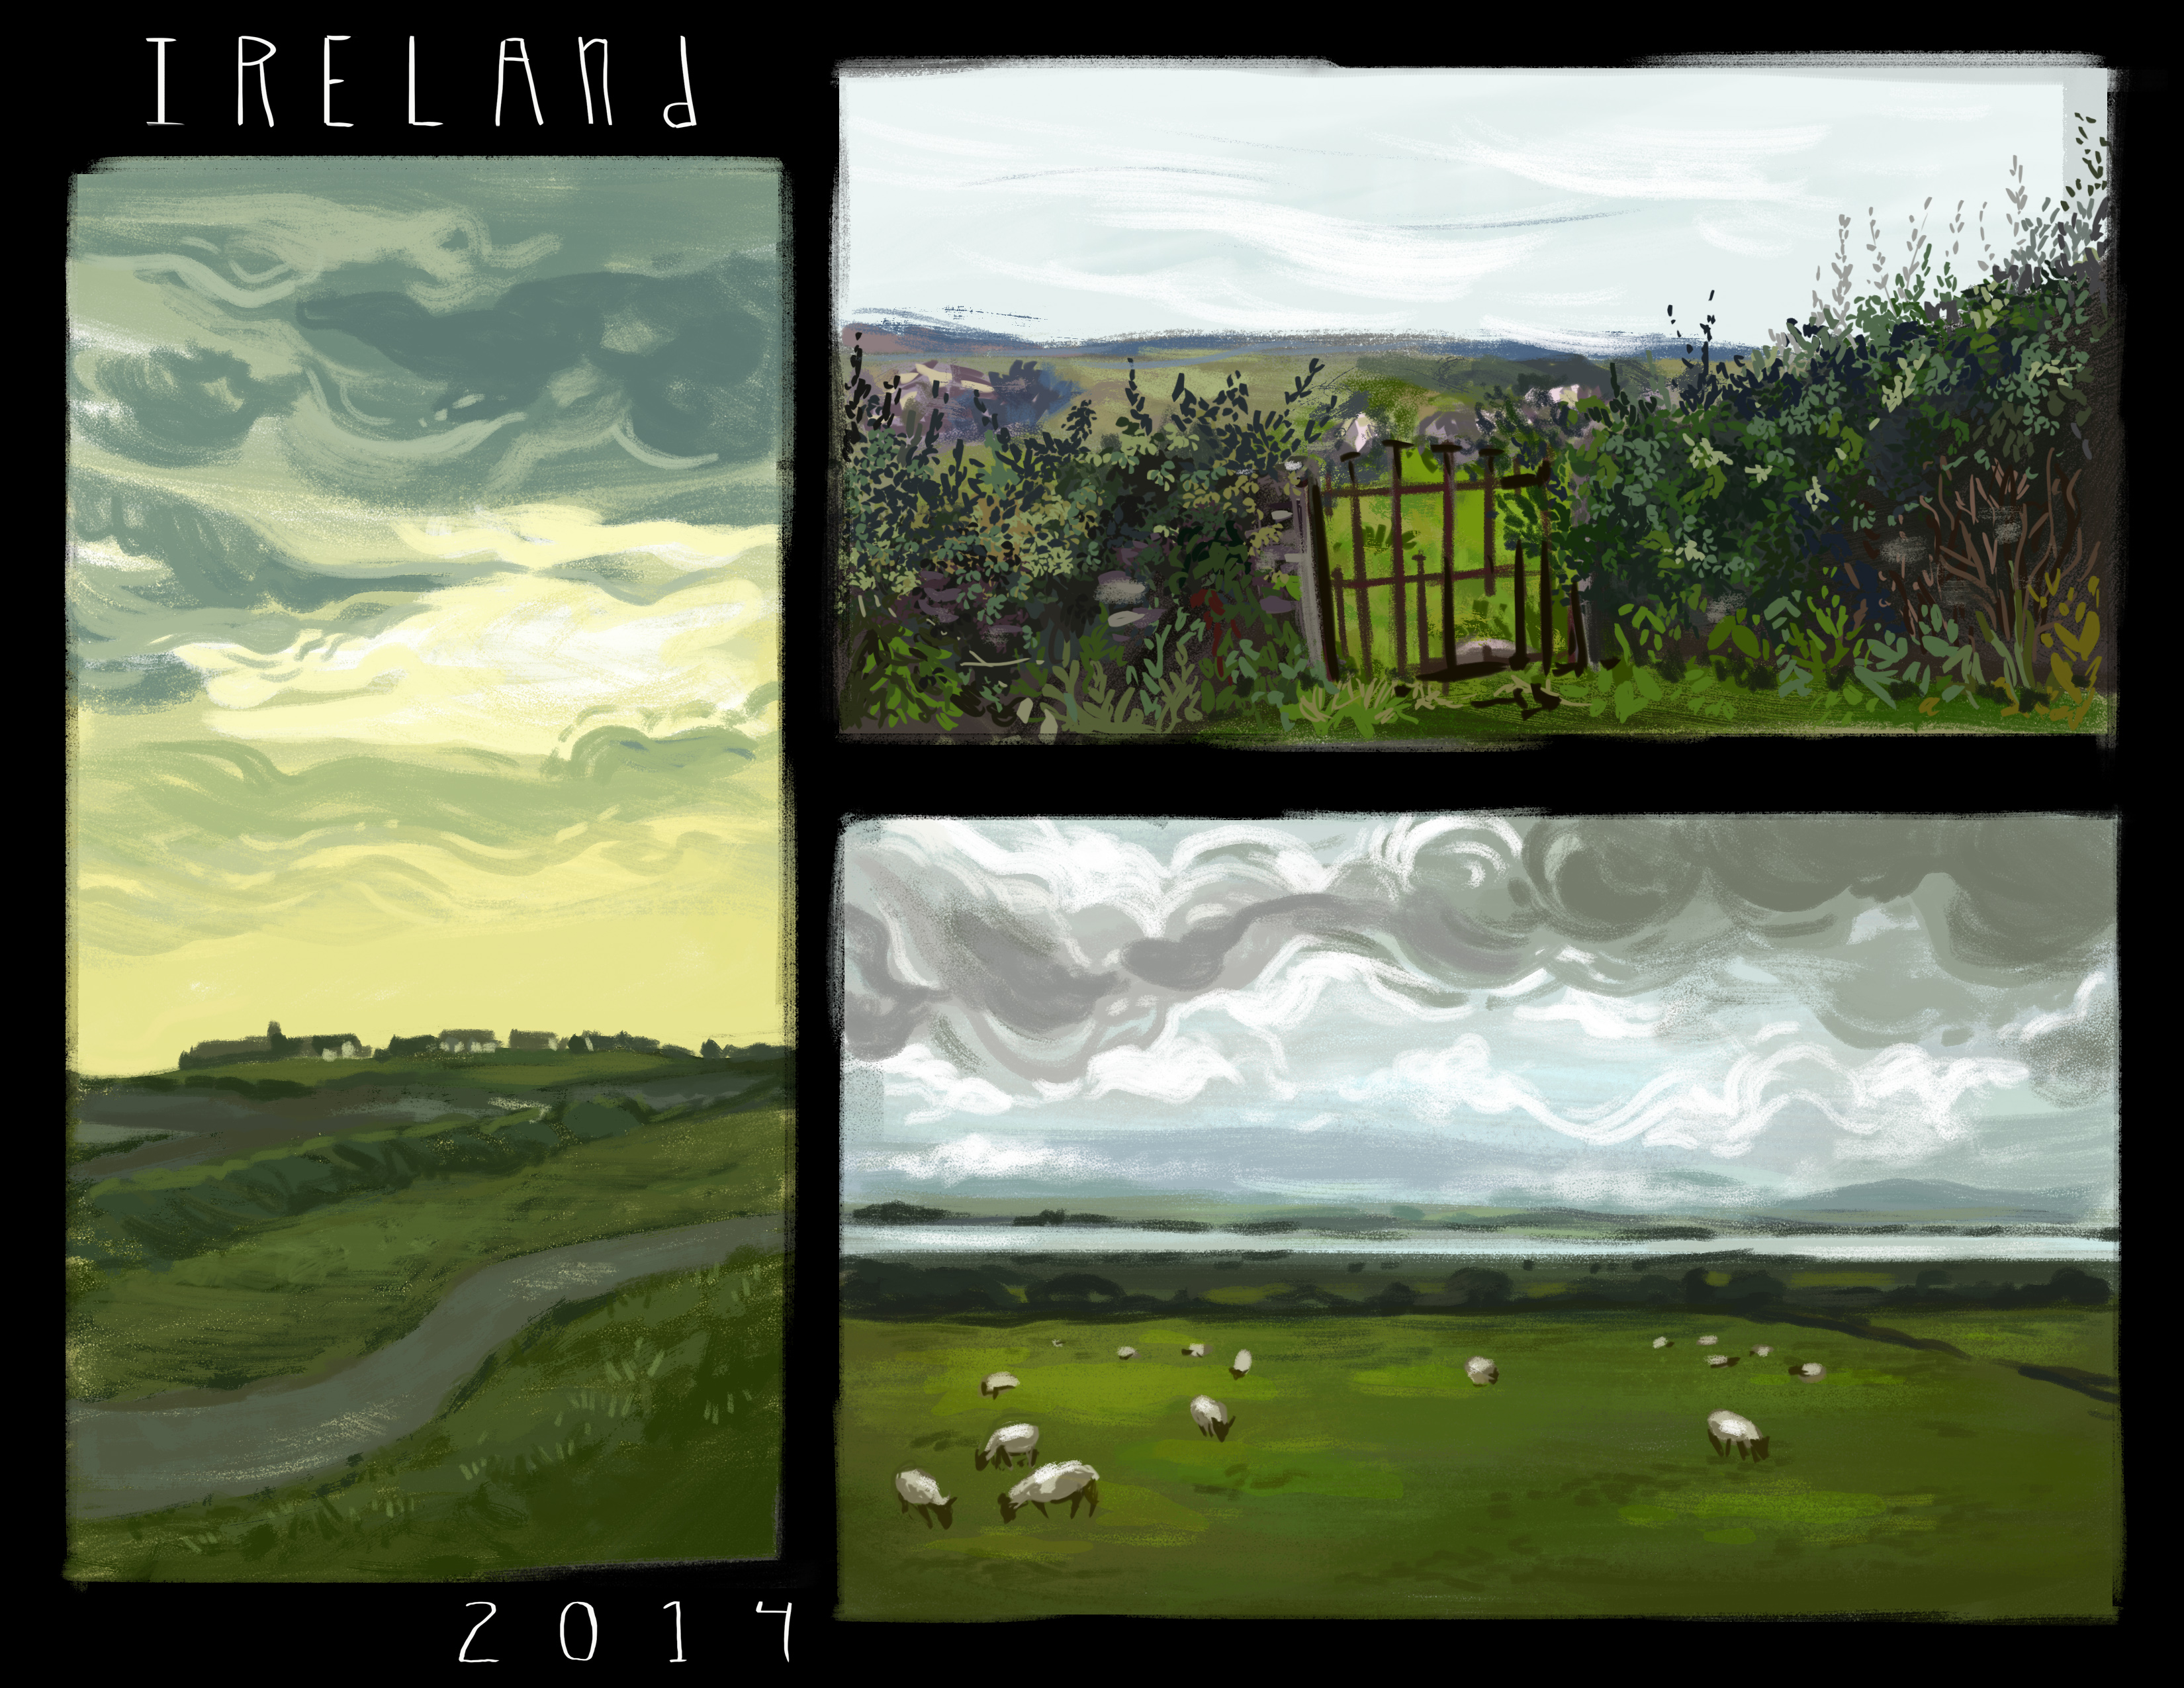 Digital studies of Ireland